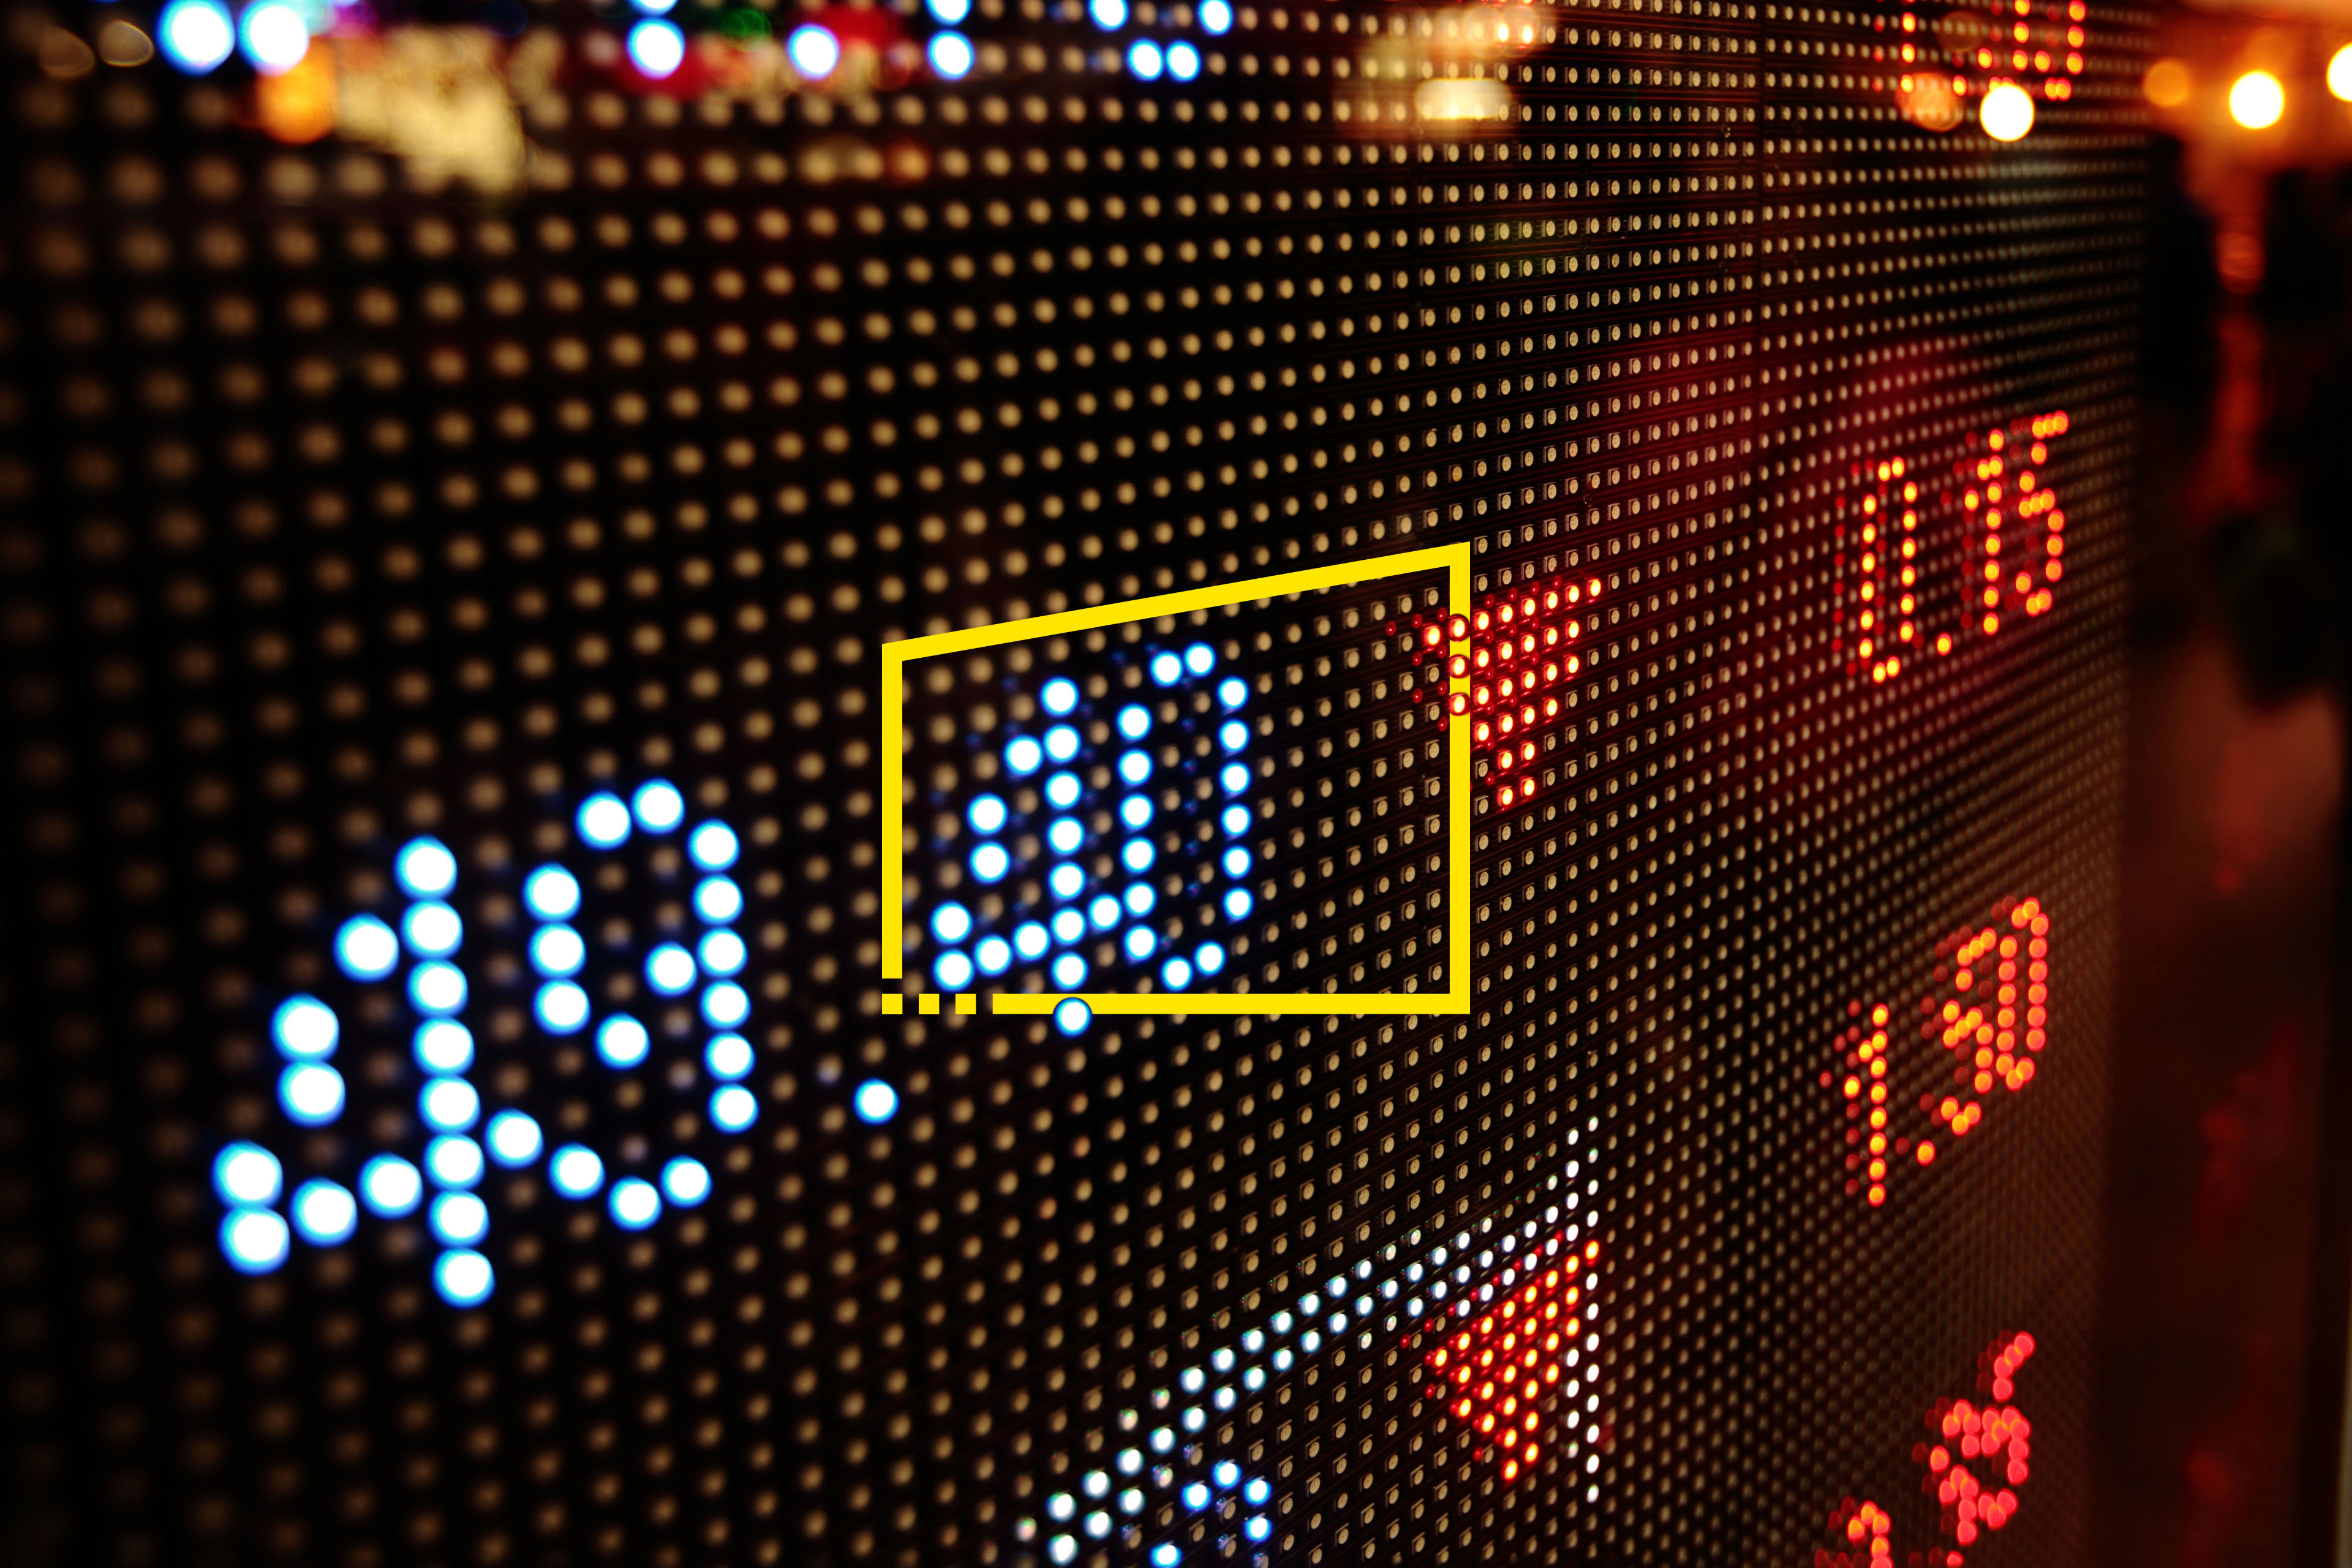 Stock market charts in window